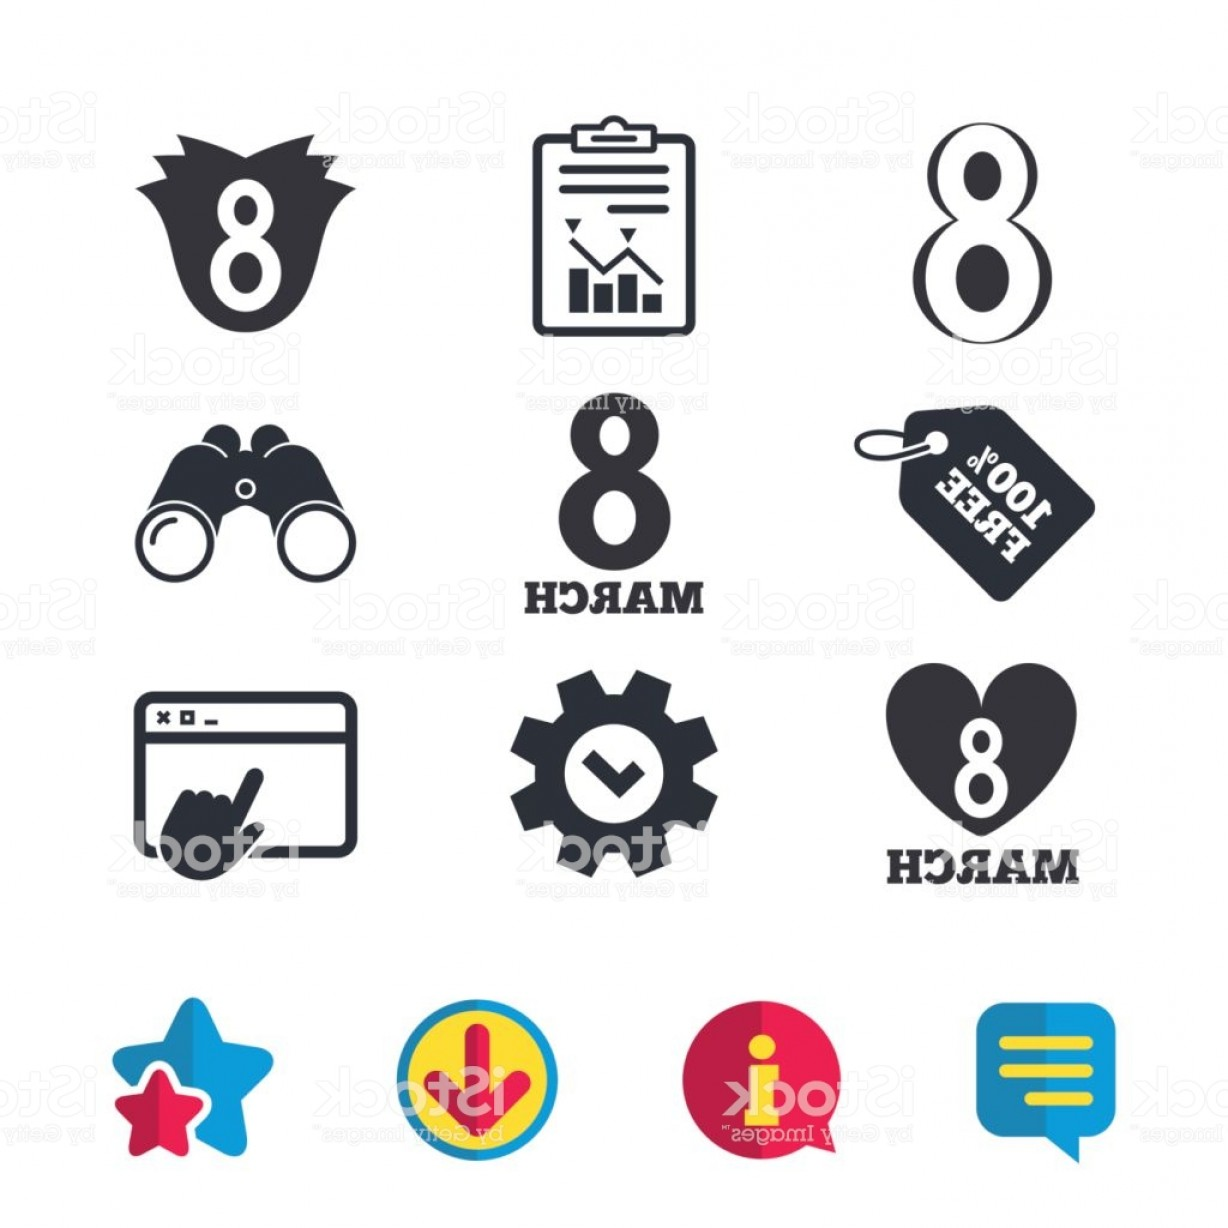 Windows 8 Phone Icon Vector: March Womens Day Icons Flower Heart Symbols Gm